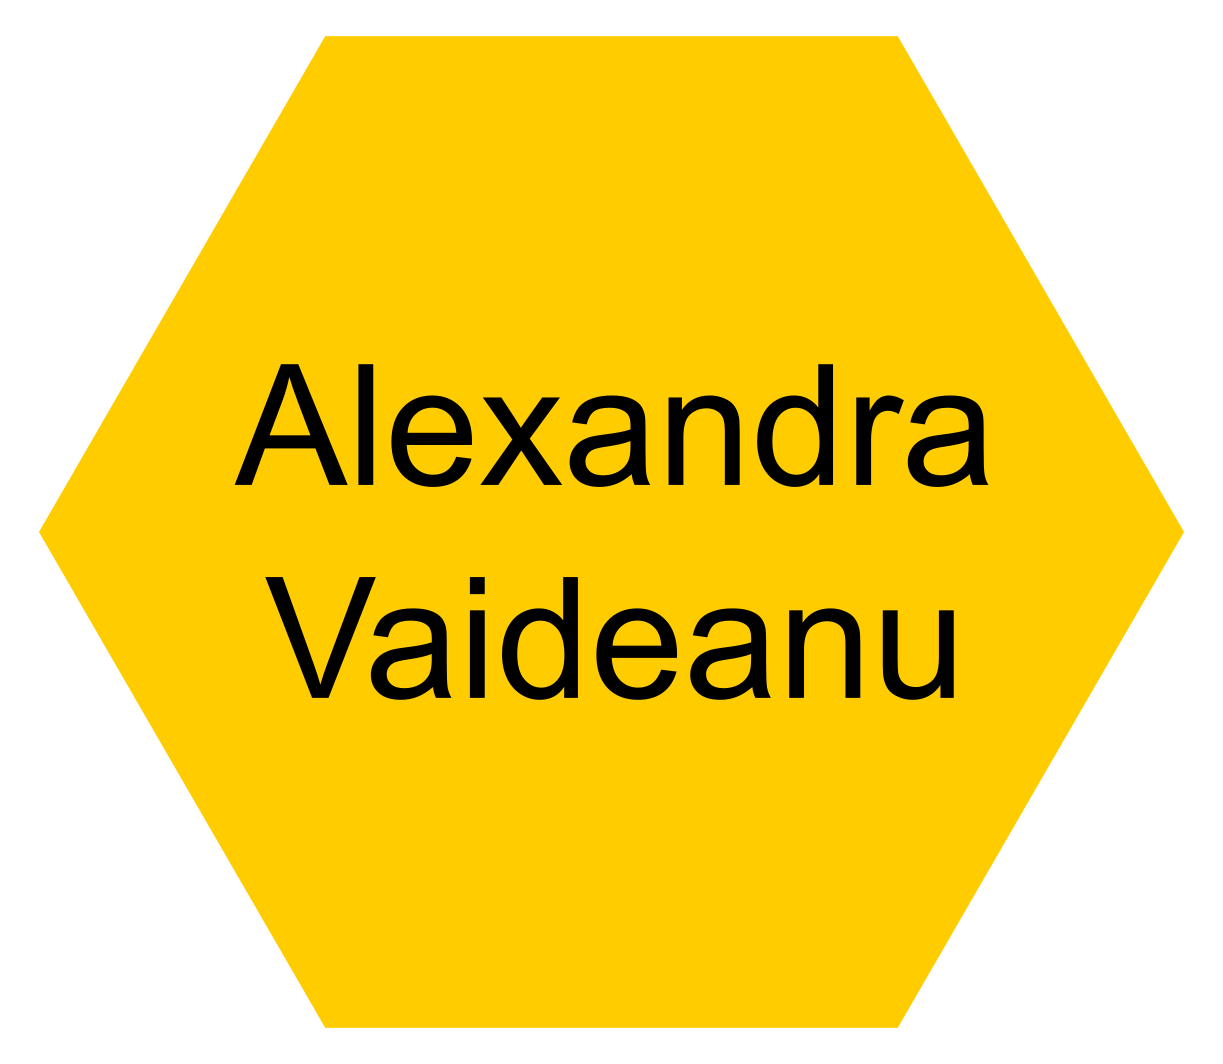 Dr. Alexandra Vaideanu (UCL School of Pharmacy: Post-Doctoral Researcher) - Click this icon to reveal their contact details.